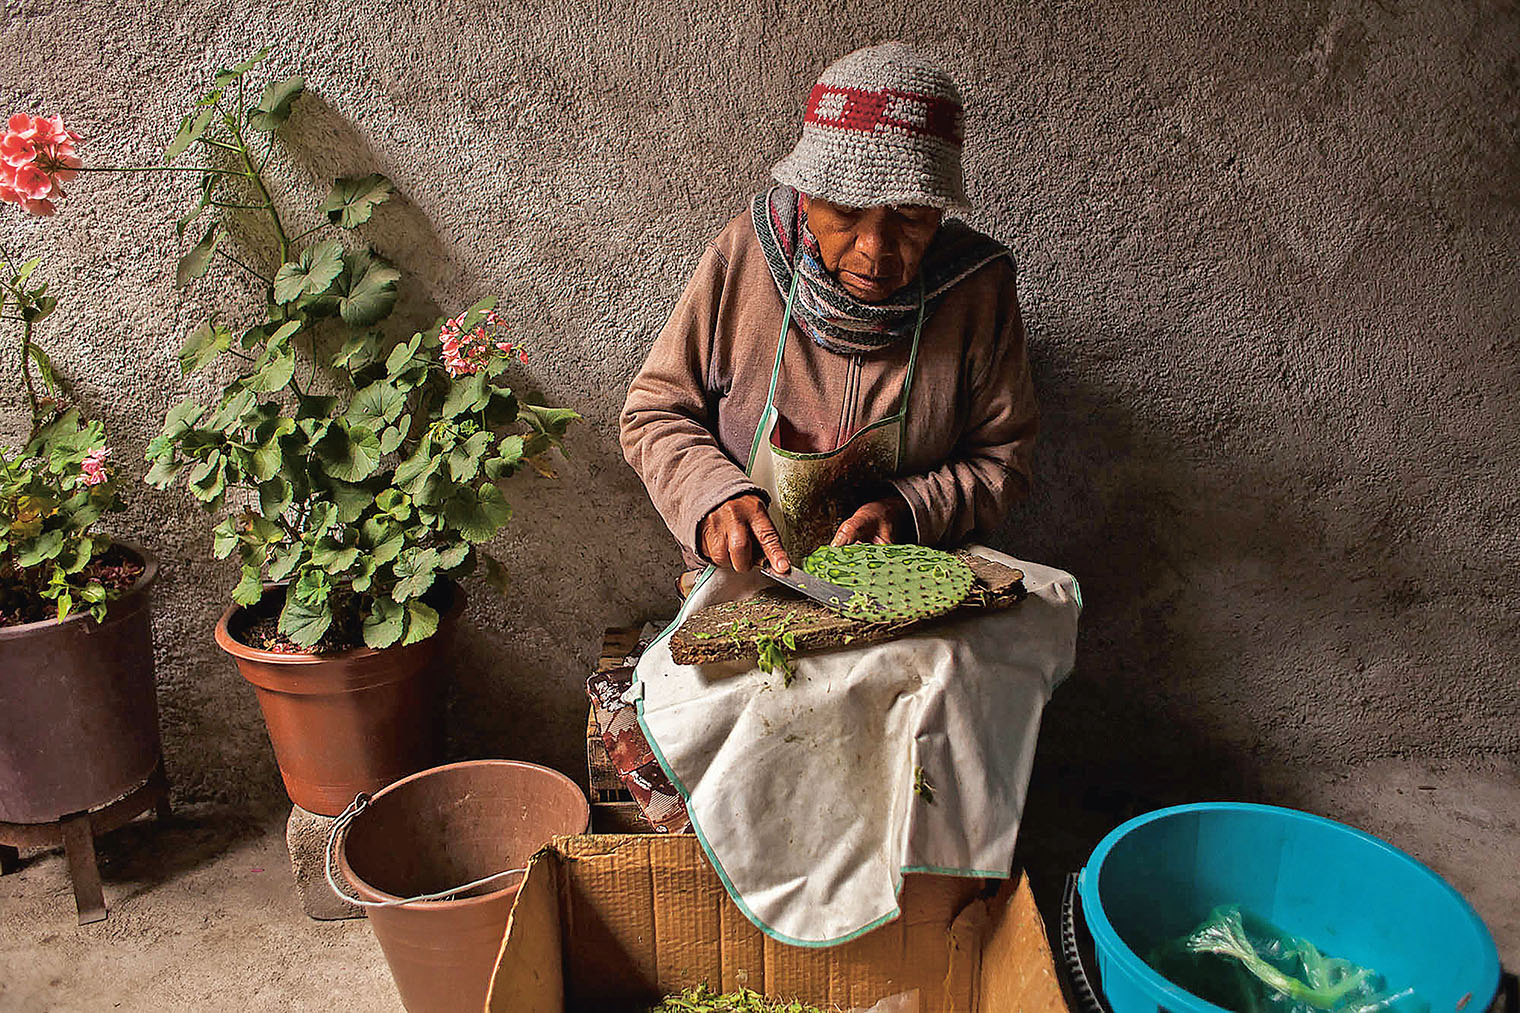 Socorro Aguilar de-spines a cactus pad in Real de Catorce, Mexico. She cooks it up with onions, tomato and chillies or drinks it in smoothies. Photo: Antonio Cascio